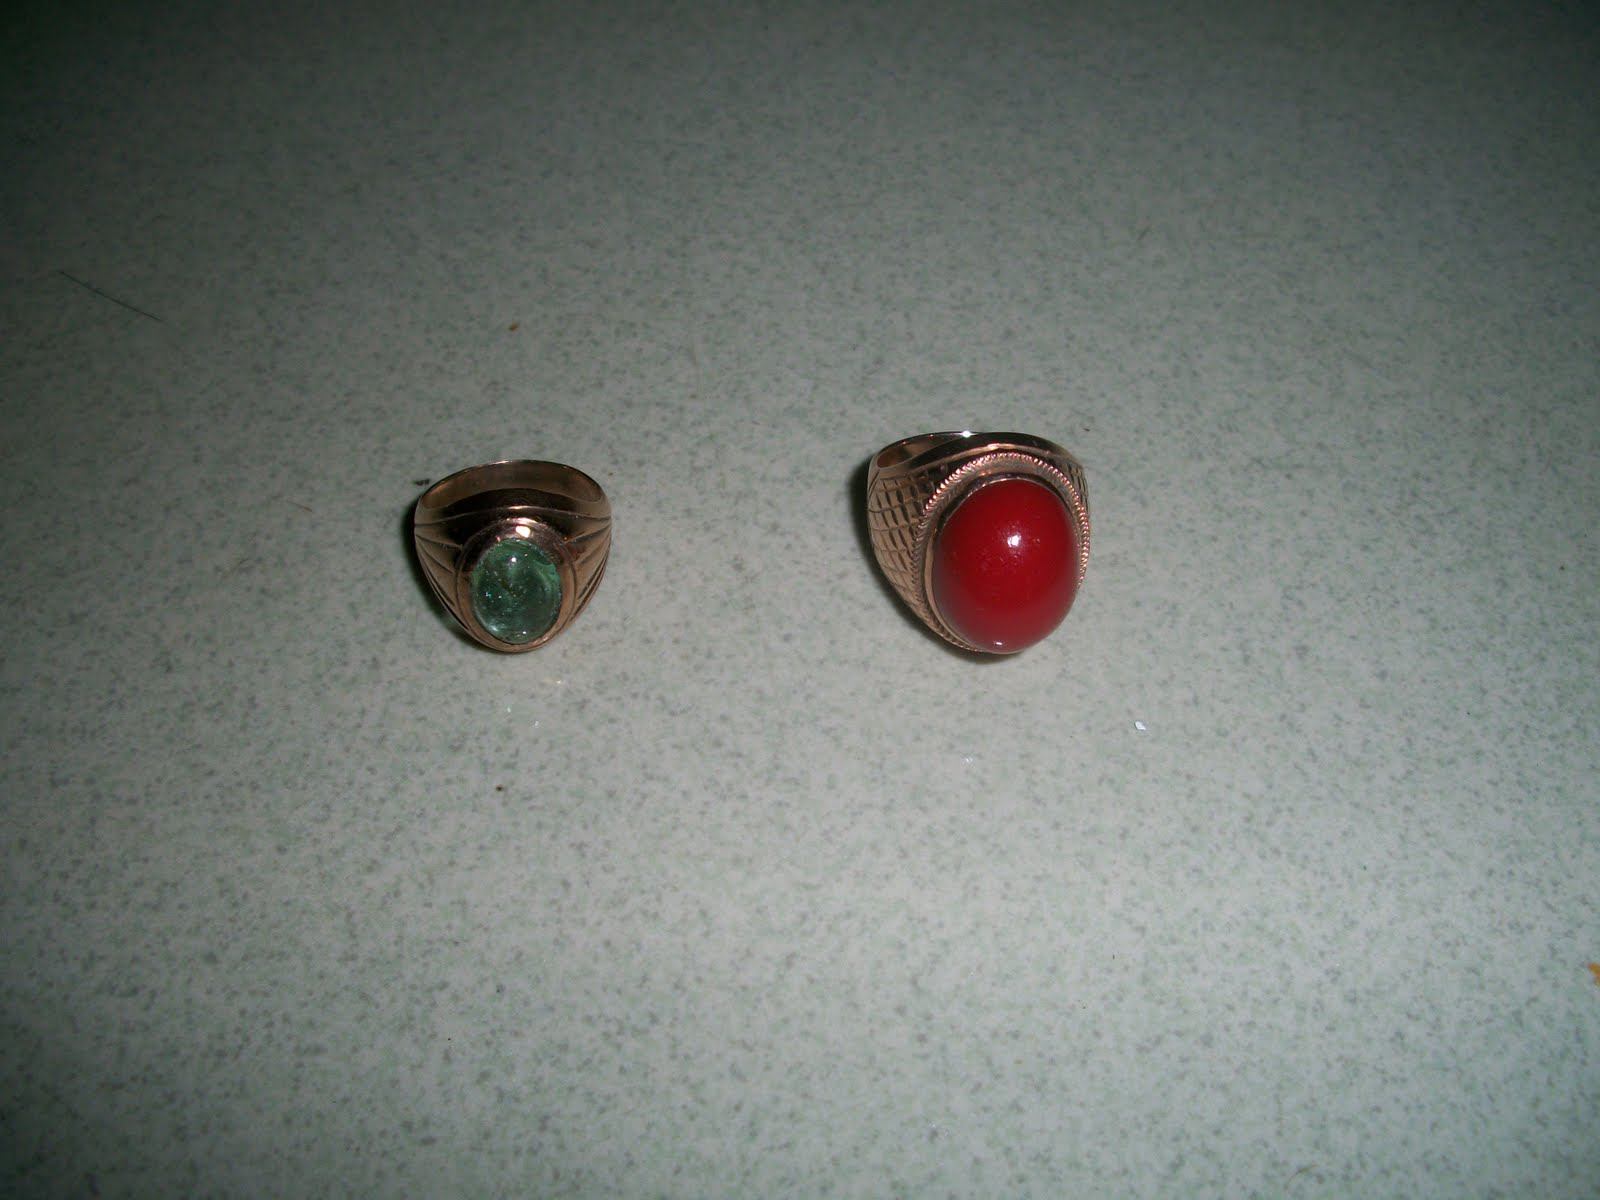 Collectible Items 2 Pieces Old Vintage Gold Rings 2